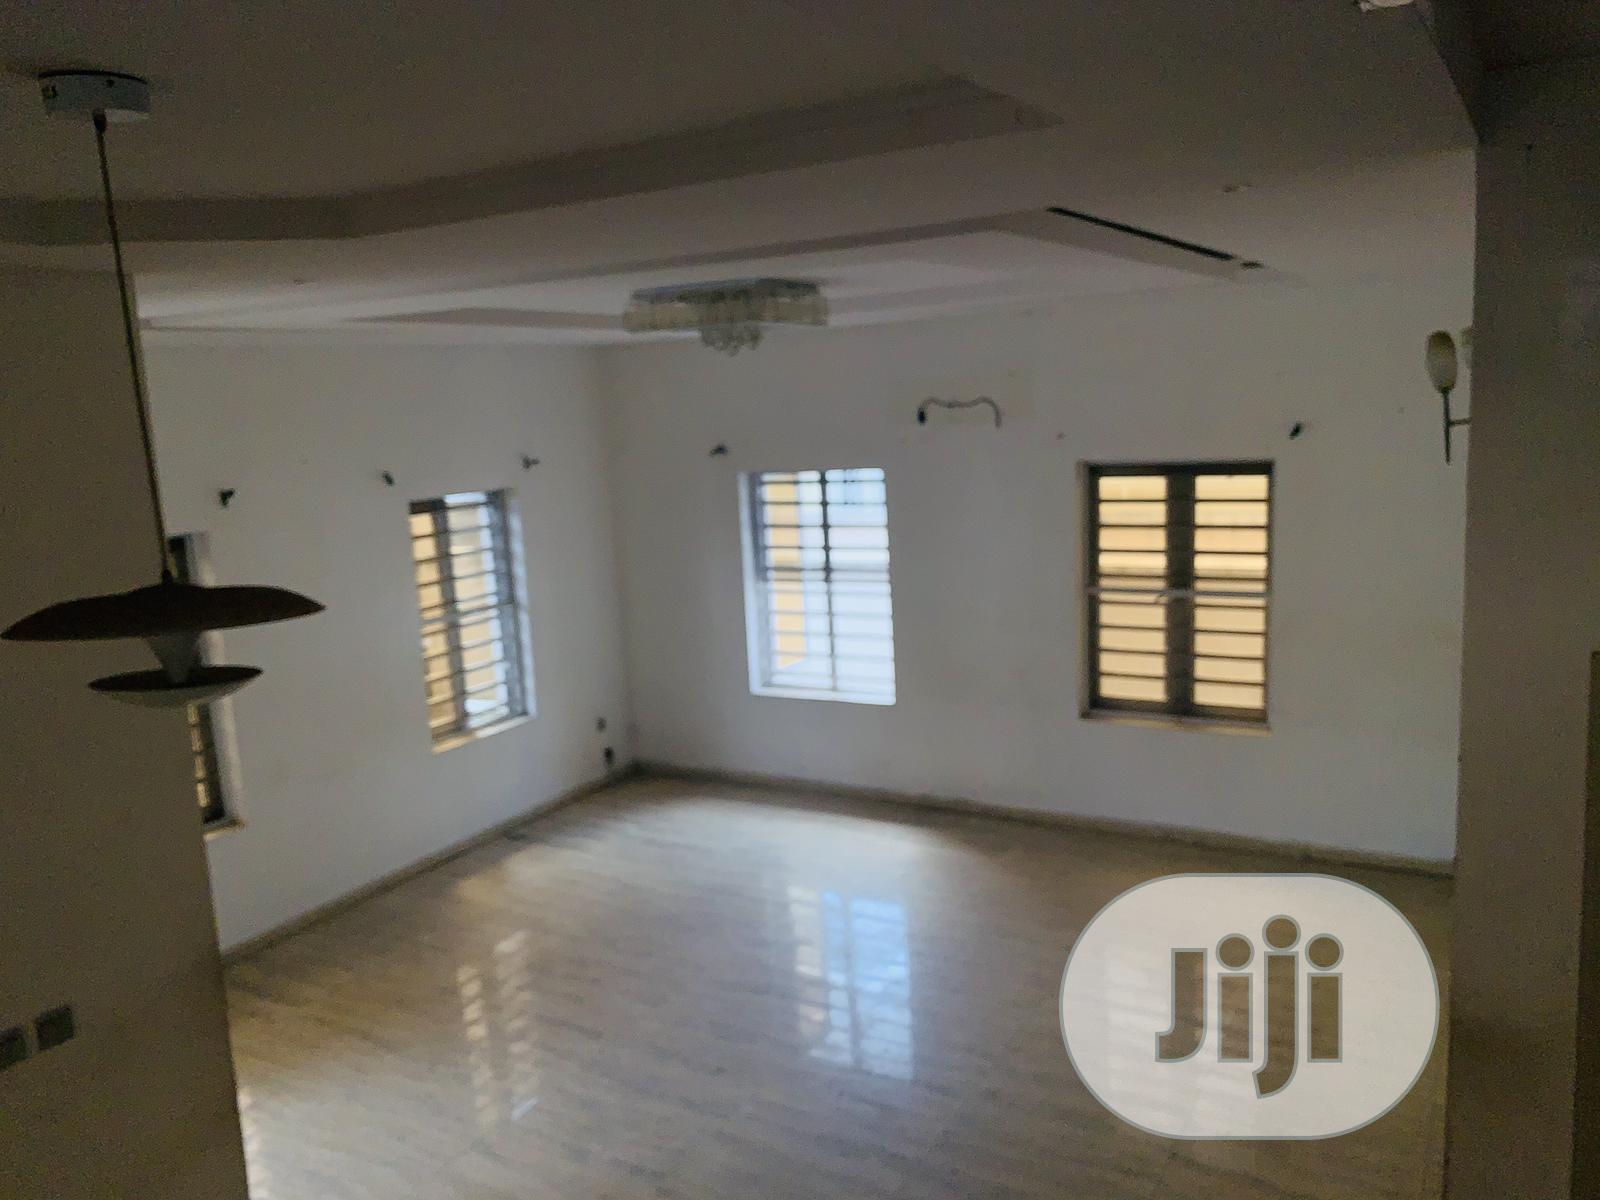 5 Bedrooms Detached Duplex + 1 Room BQ   Houses & Apartments For Rent for sale in Lekki Phase 1, Lagos State, Nigeria